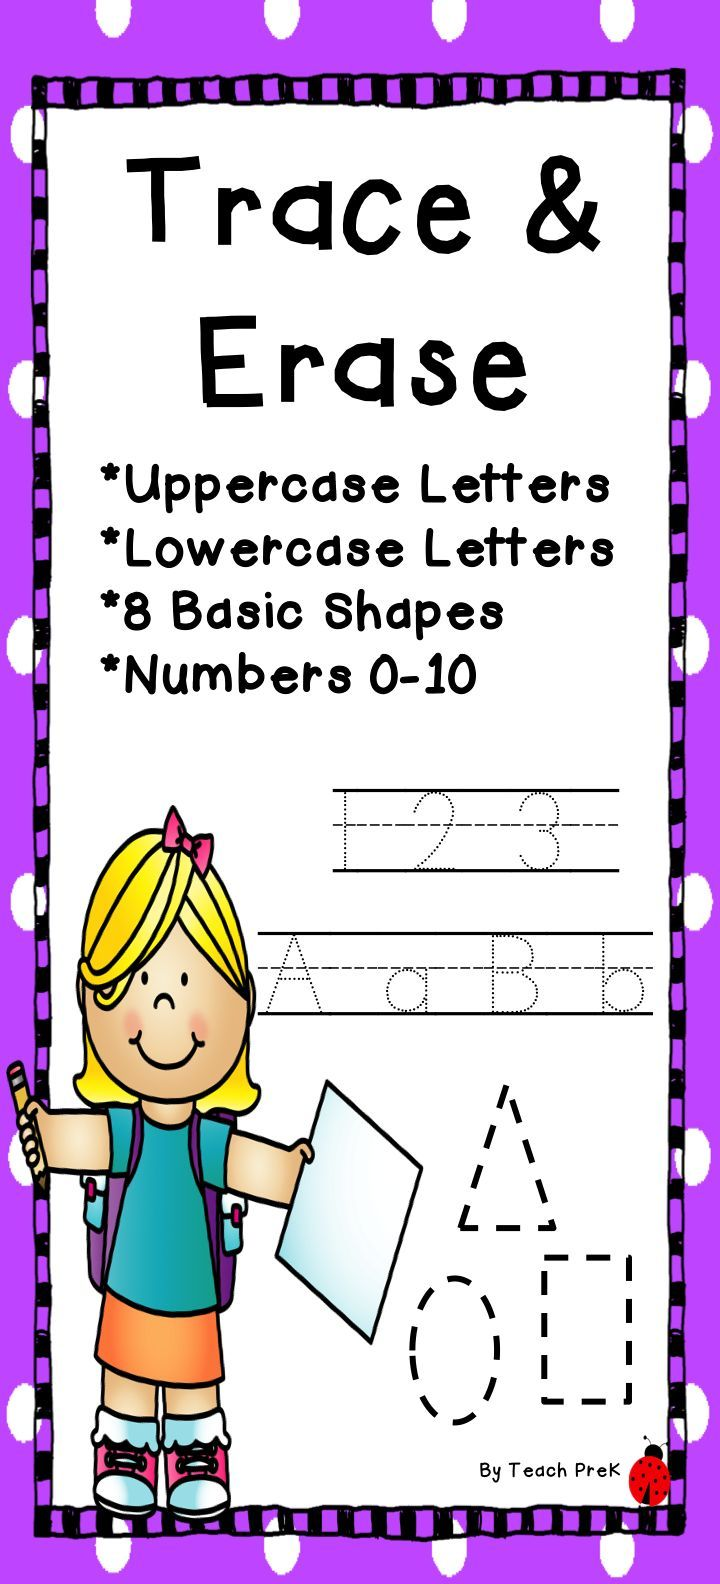 Bright, fun, and developmentally appropriate letter, number, and shape tracing cards. Just print, laminate and cut in half! Use a dry-erase type marker and follow the dotted lines! Just wipe and re-use! Perfect for Kindergarten, PreK, Preschool and homeschool!